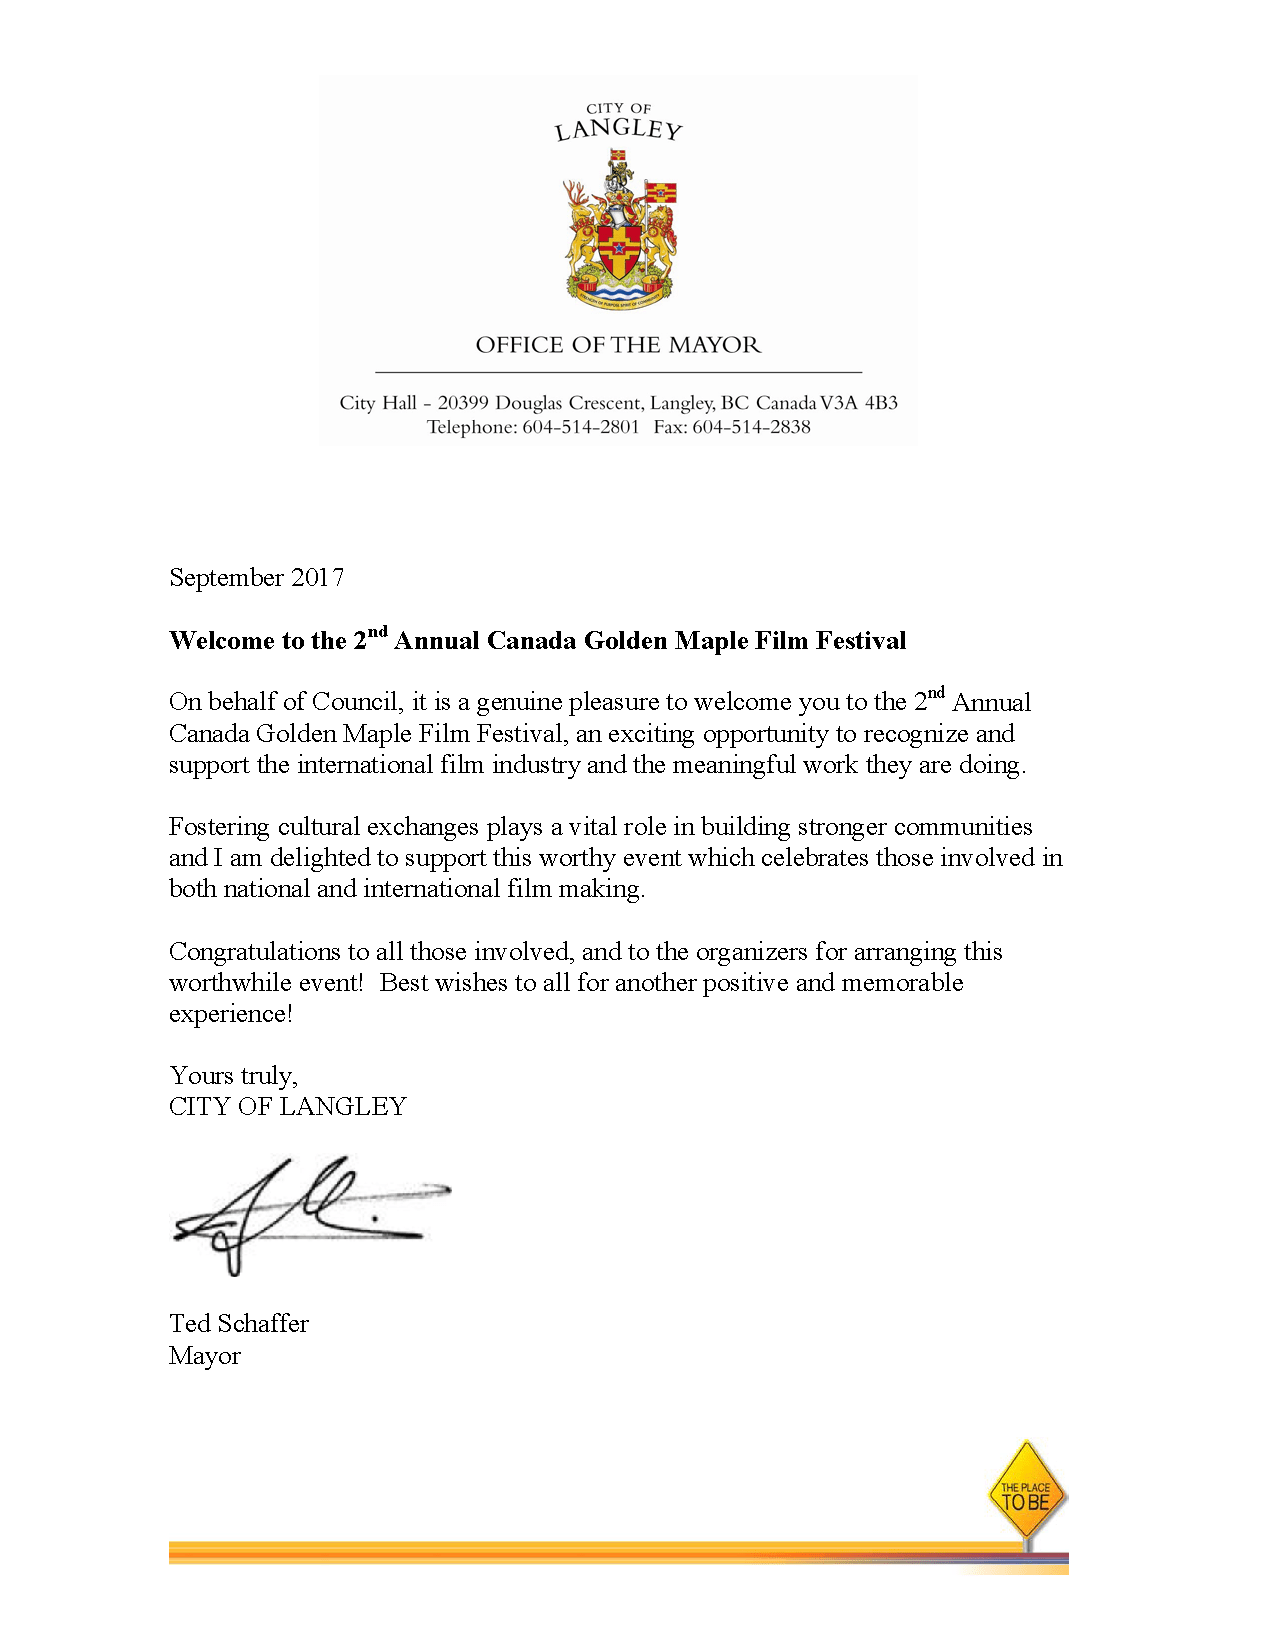 Congratulatory Letter from Ted-Schaffer, Mayor of Langley